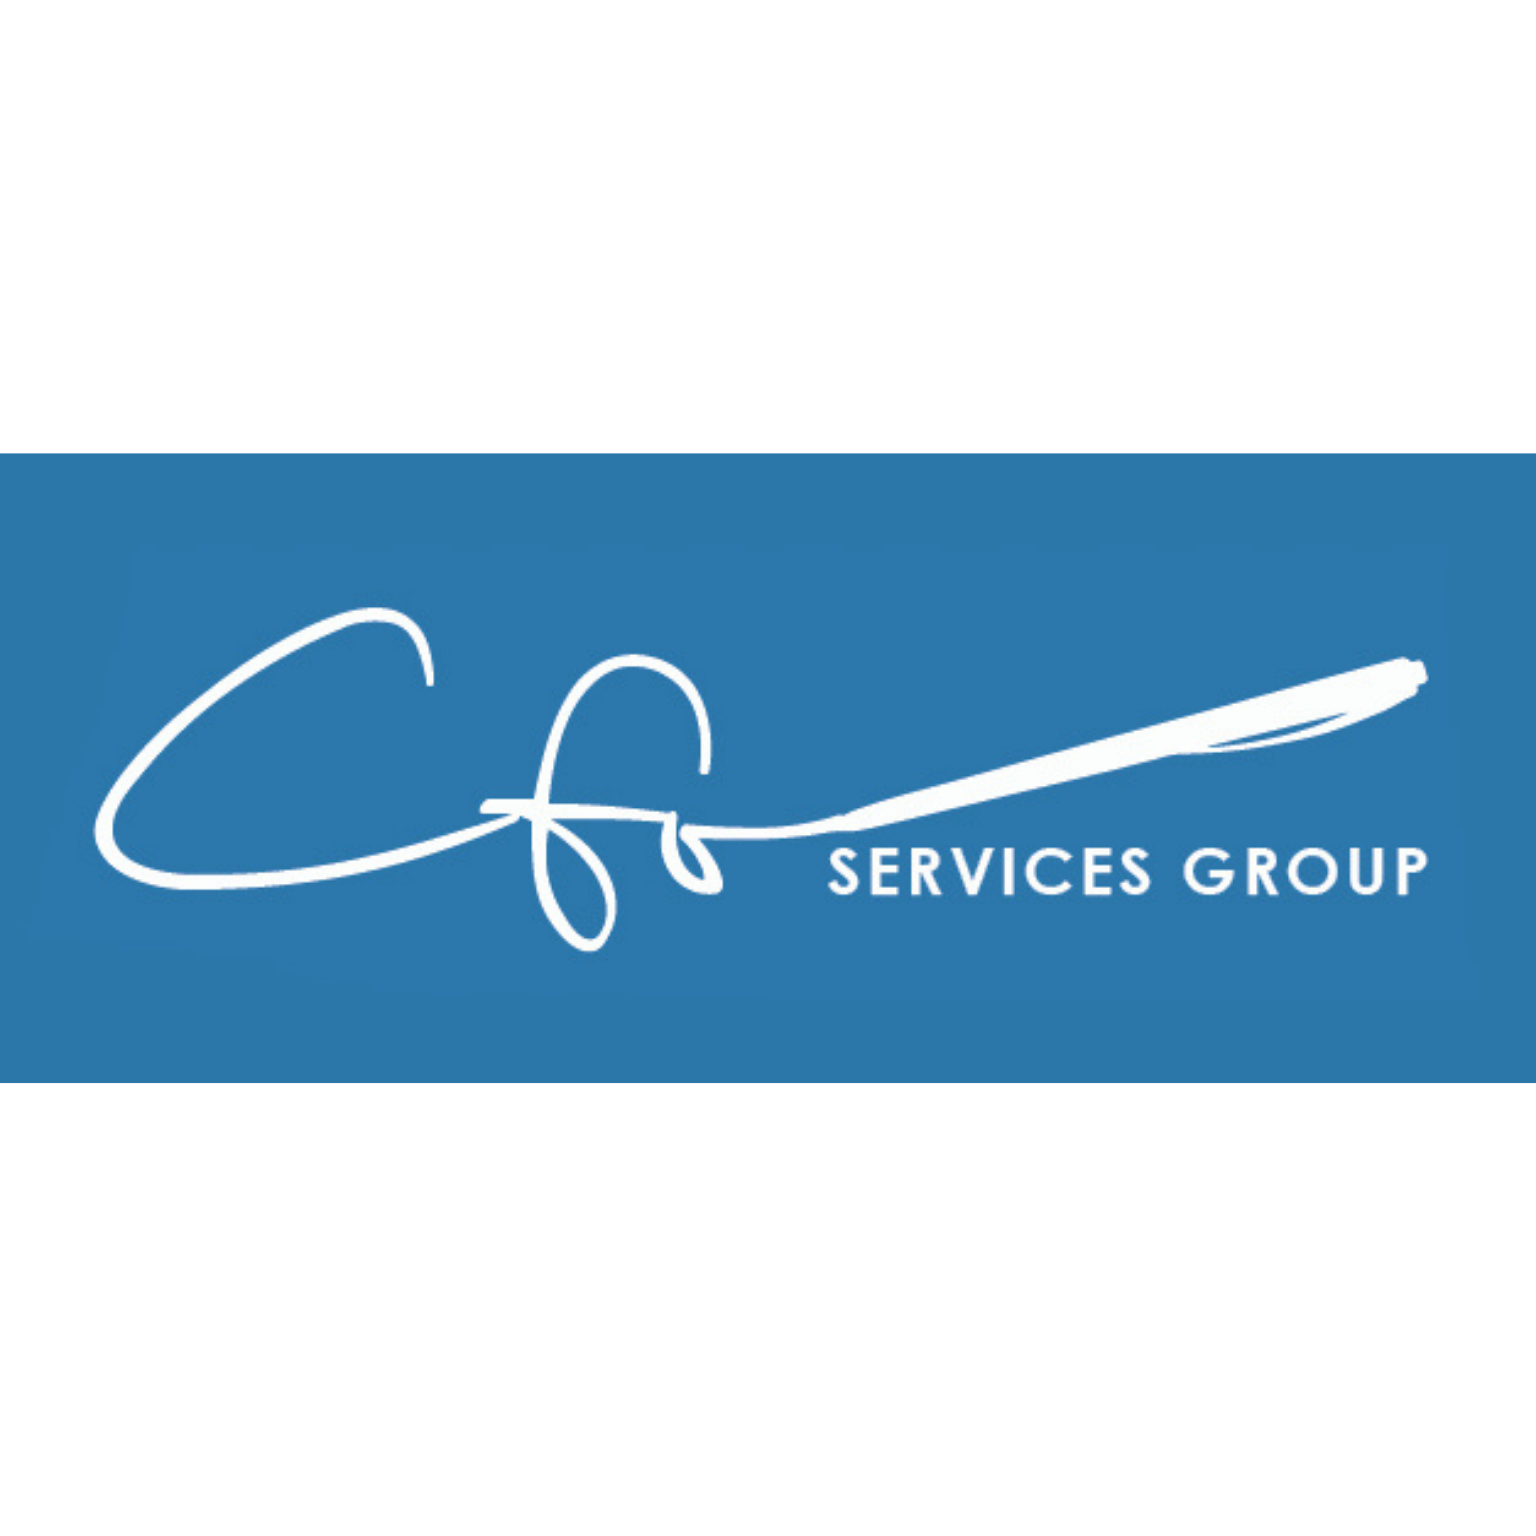 CFO Services Group